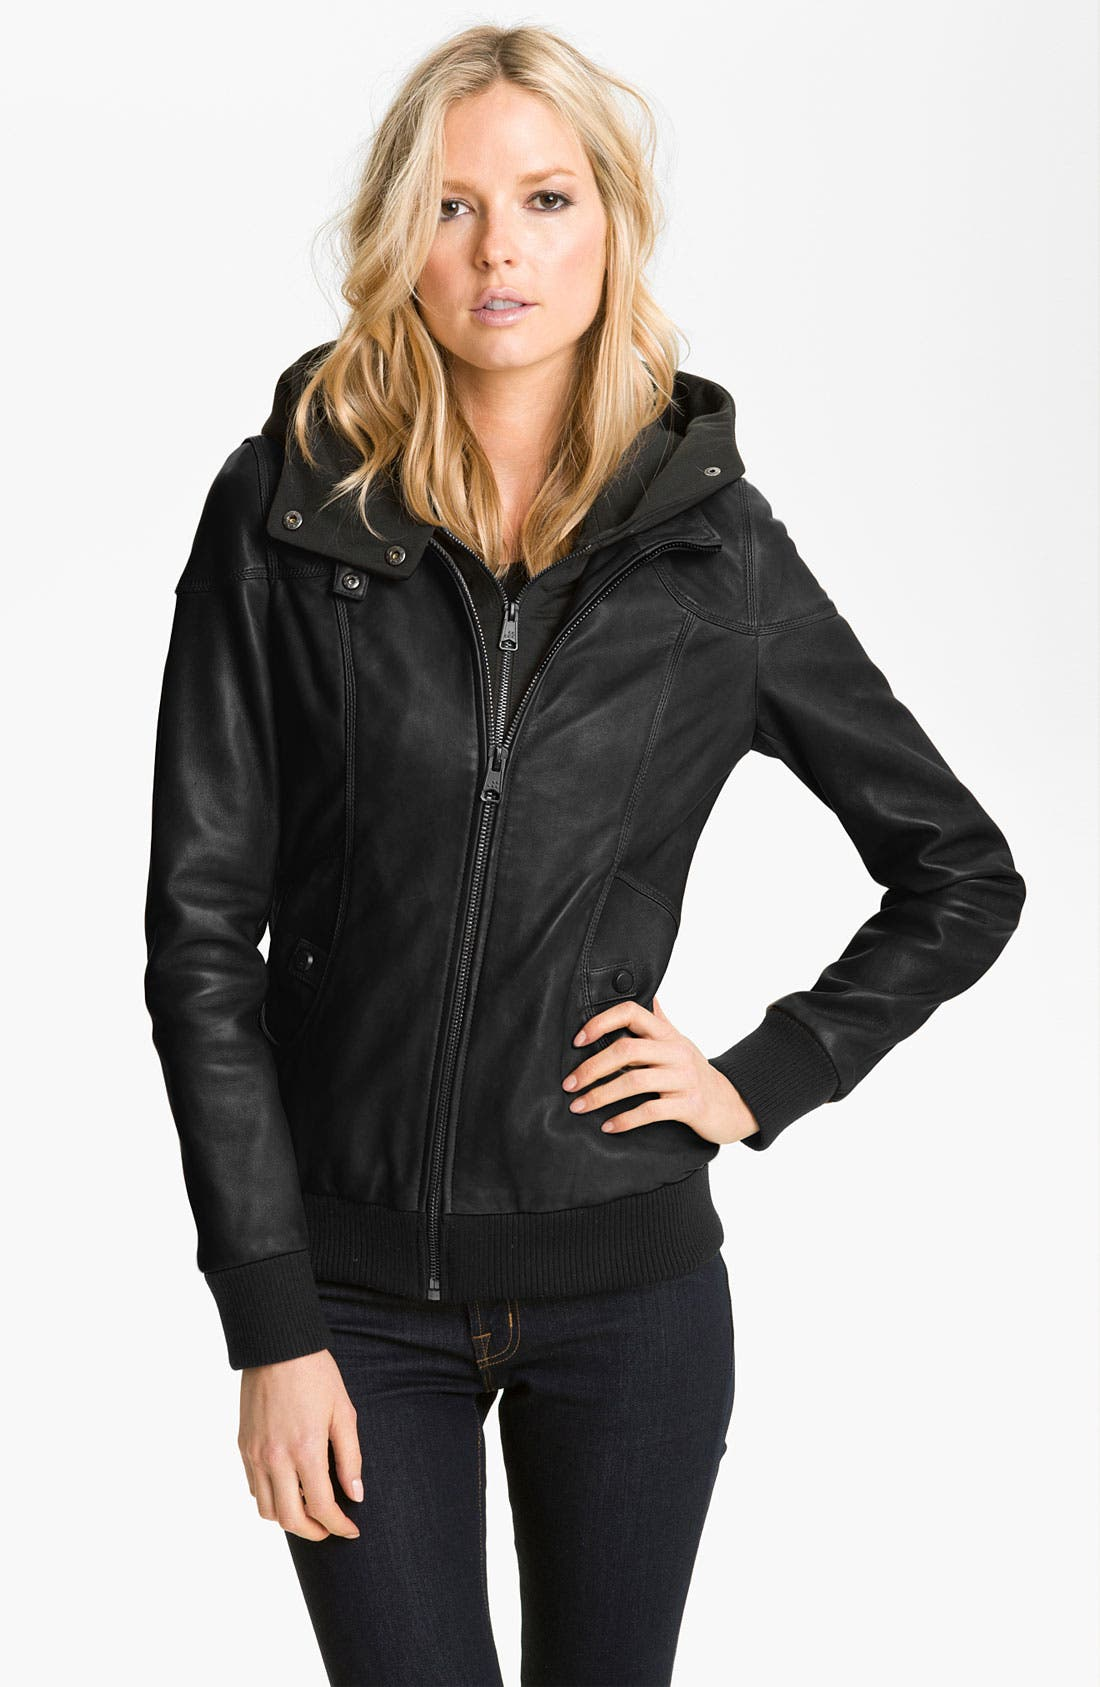 Main Image - Soia & Kyo Leather Jacket with Removable Hoodie Liner